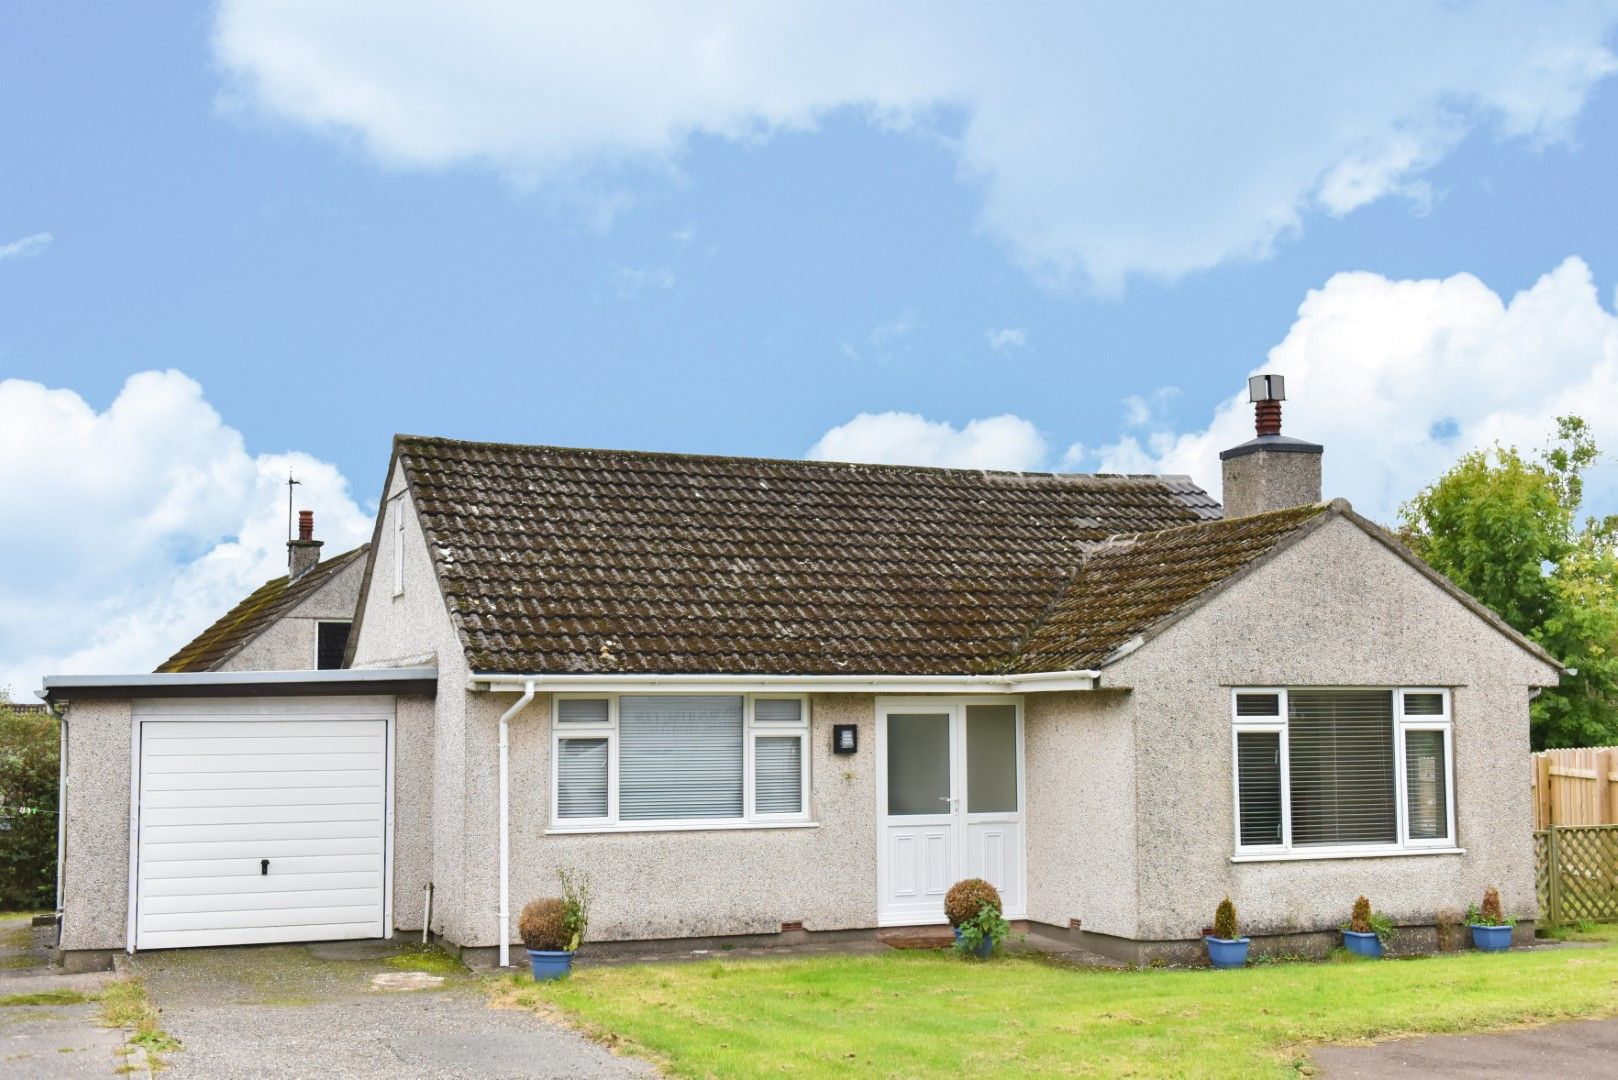 3 bedroom detached bungalow For Sale in Onchan - Photograph 12